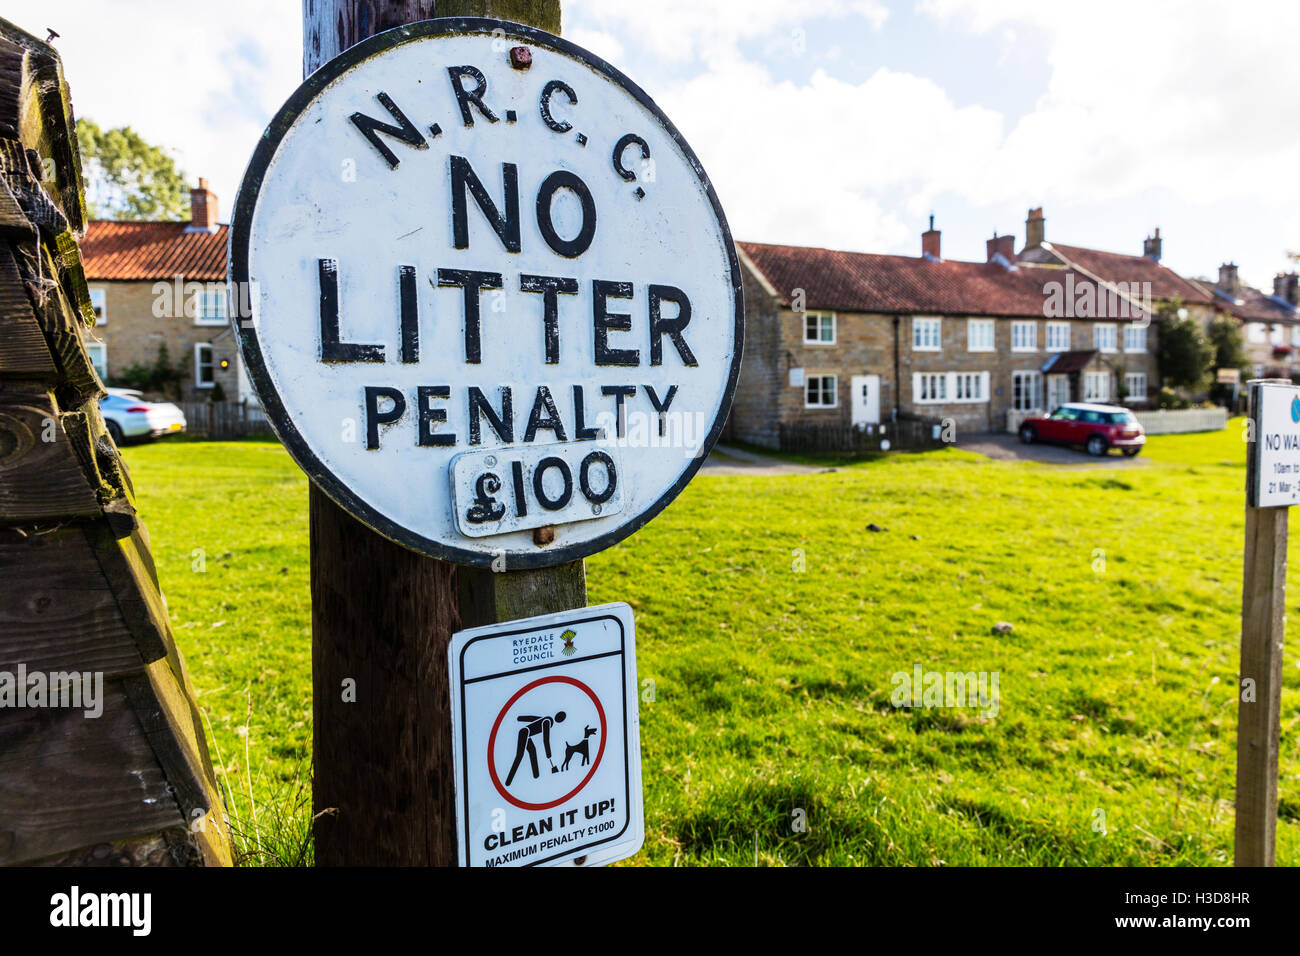 No litter sign penalty fine £100 fine for littering Yorkshire village sign signs GB UK England - Stock Image